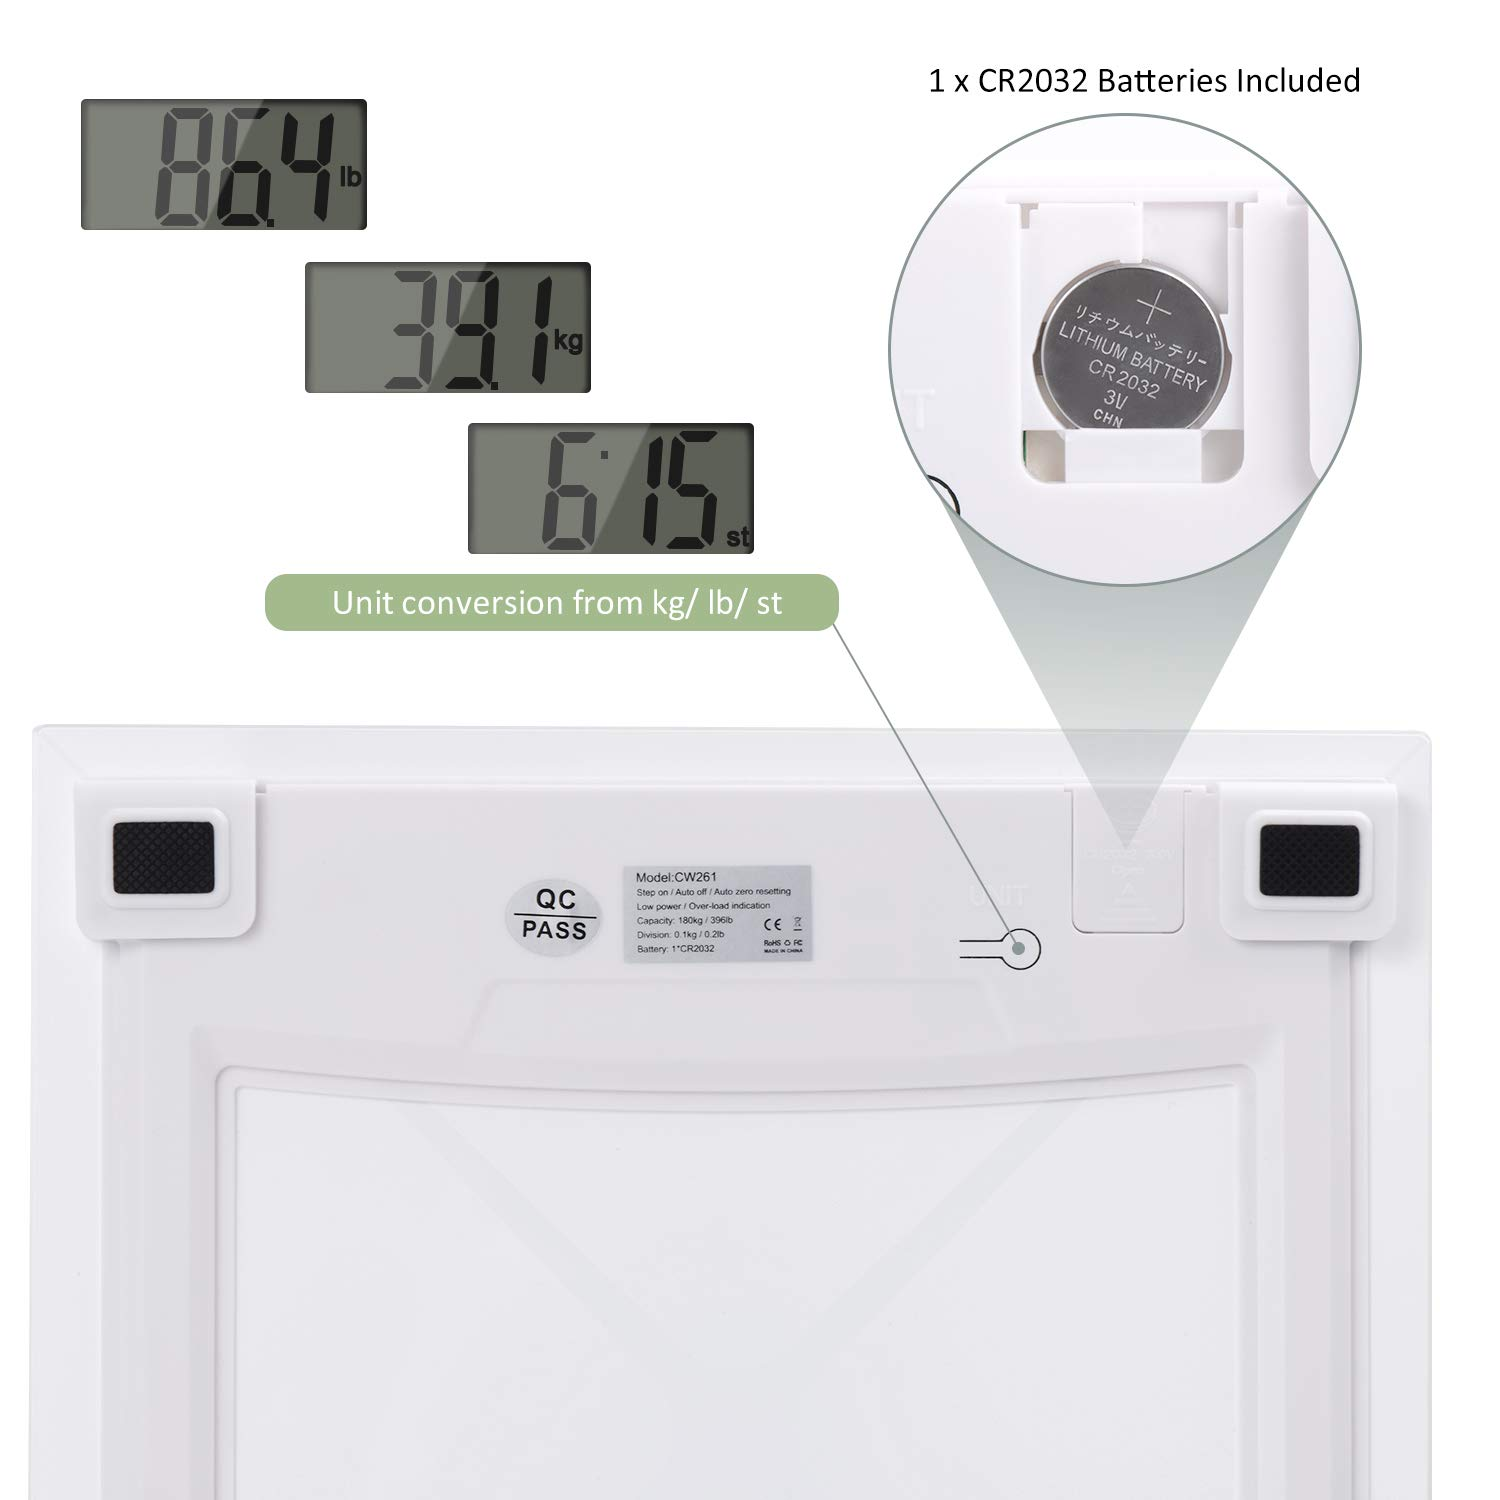 Digital Body Weight Scale, Bathroom Scale with Advanced Step-on Technology and LCD Backlight Display Scale,Tempered Glass Surface (White Silver) by AdorioPower (Image #4)